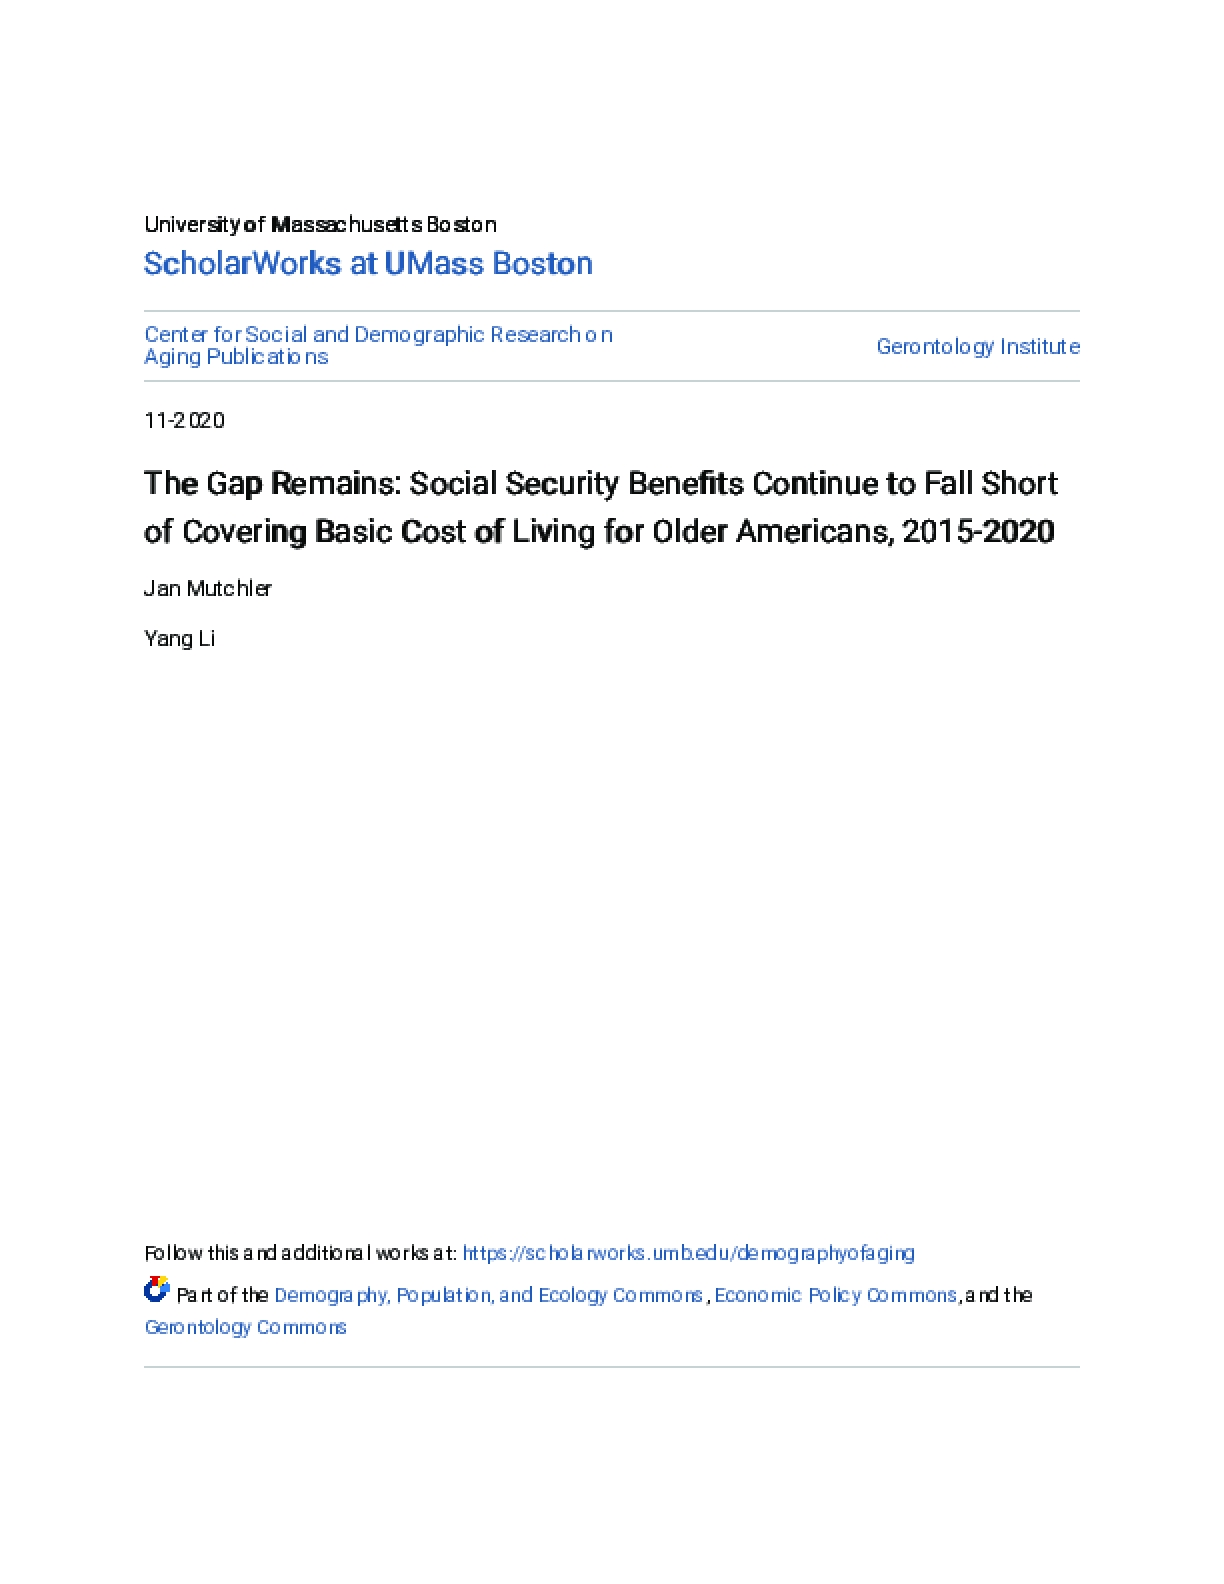 The Gap Remains: Social Security Benefits Continue to Fall Short of Covering Basic Cost of Living for Older Americans, 2015-2020